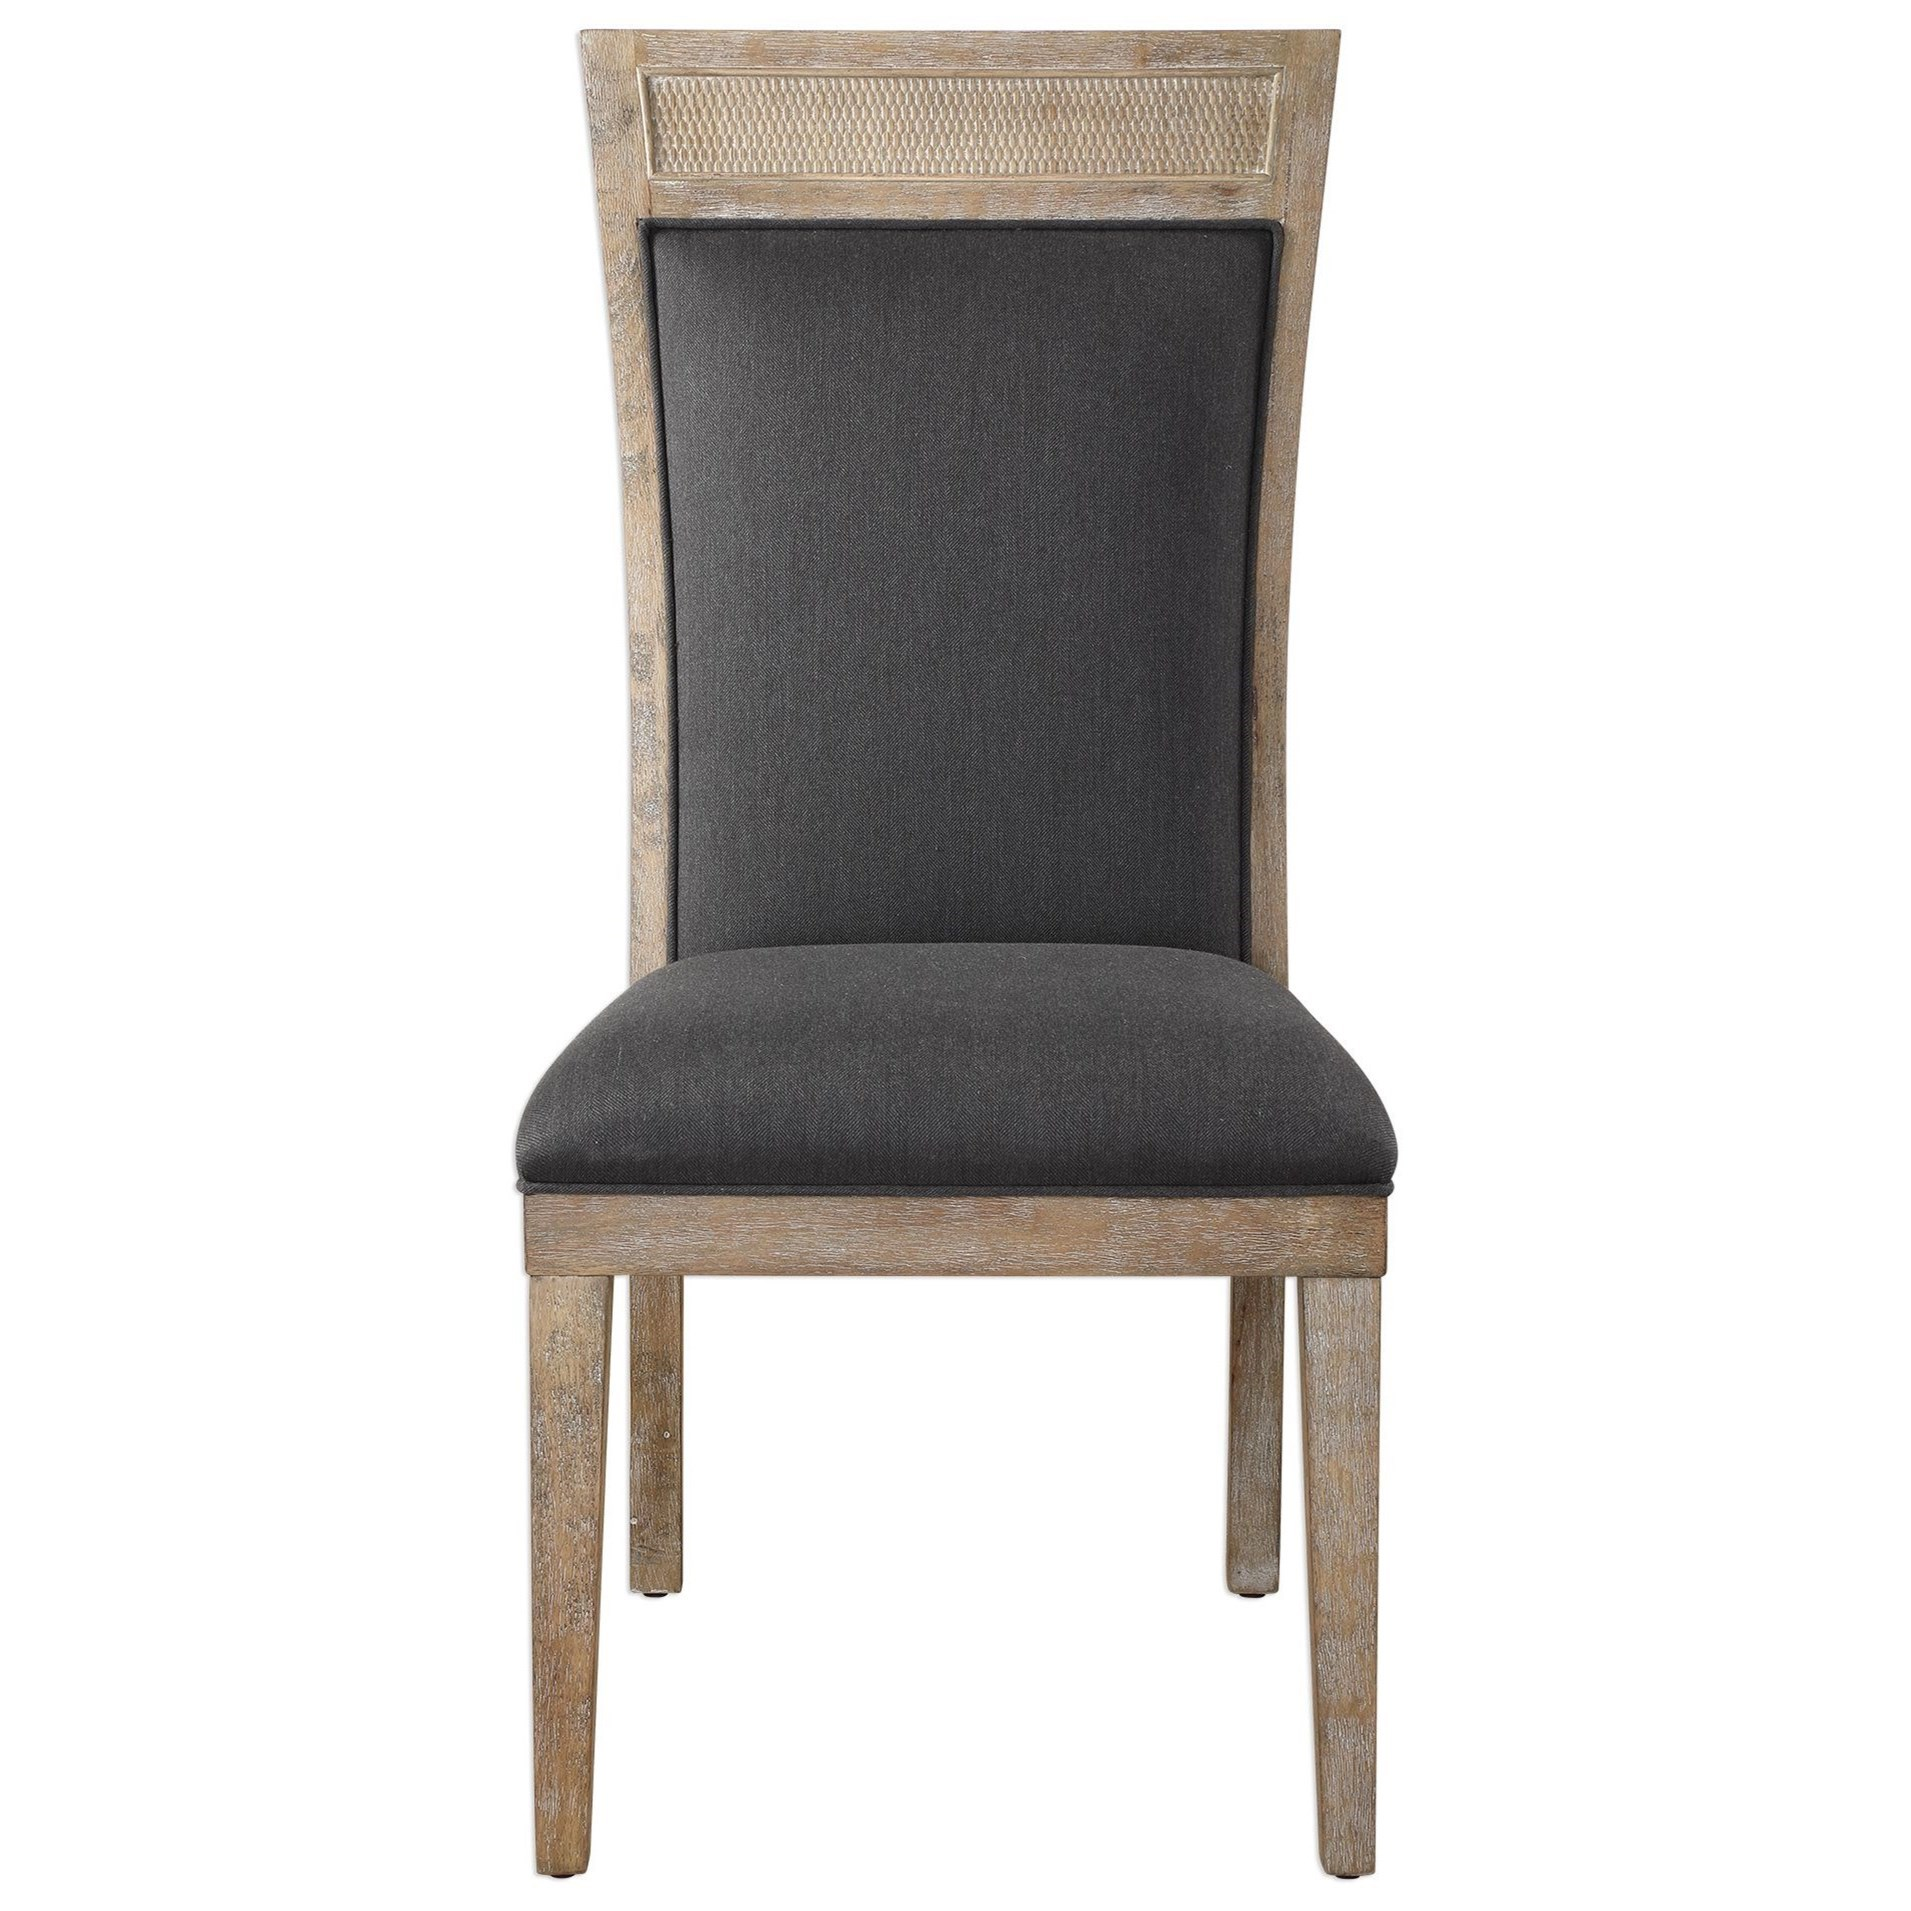 Accent Furniture - Accent Chairs Encore Dark Gray Armless Chair by Uttermost at Mueller Furniture